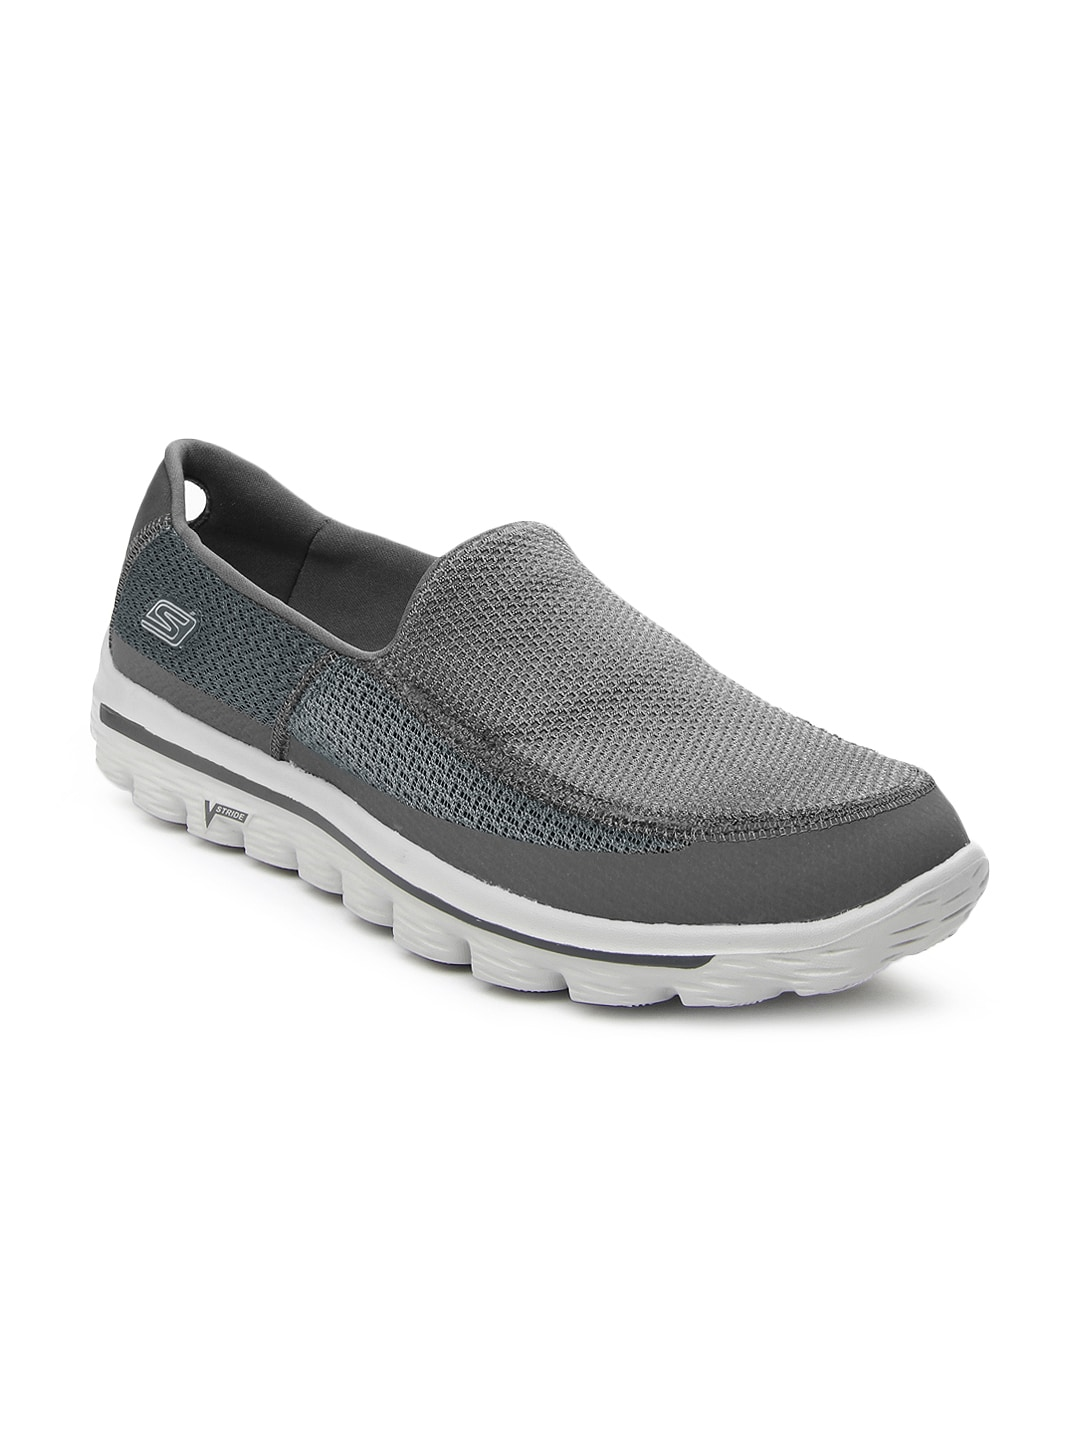 skechers walking shoes india